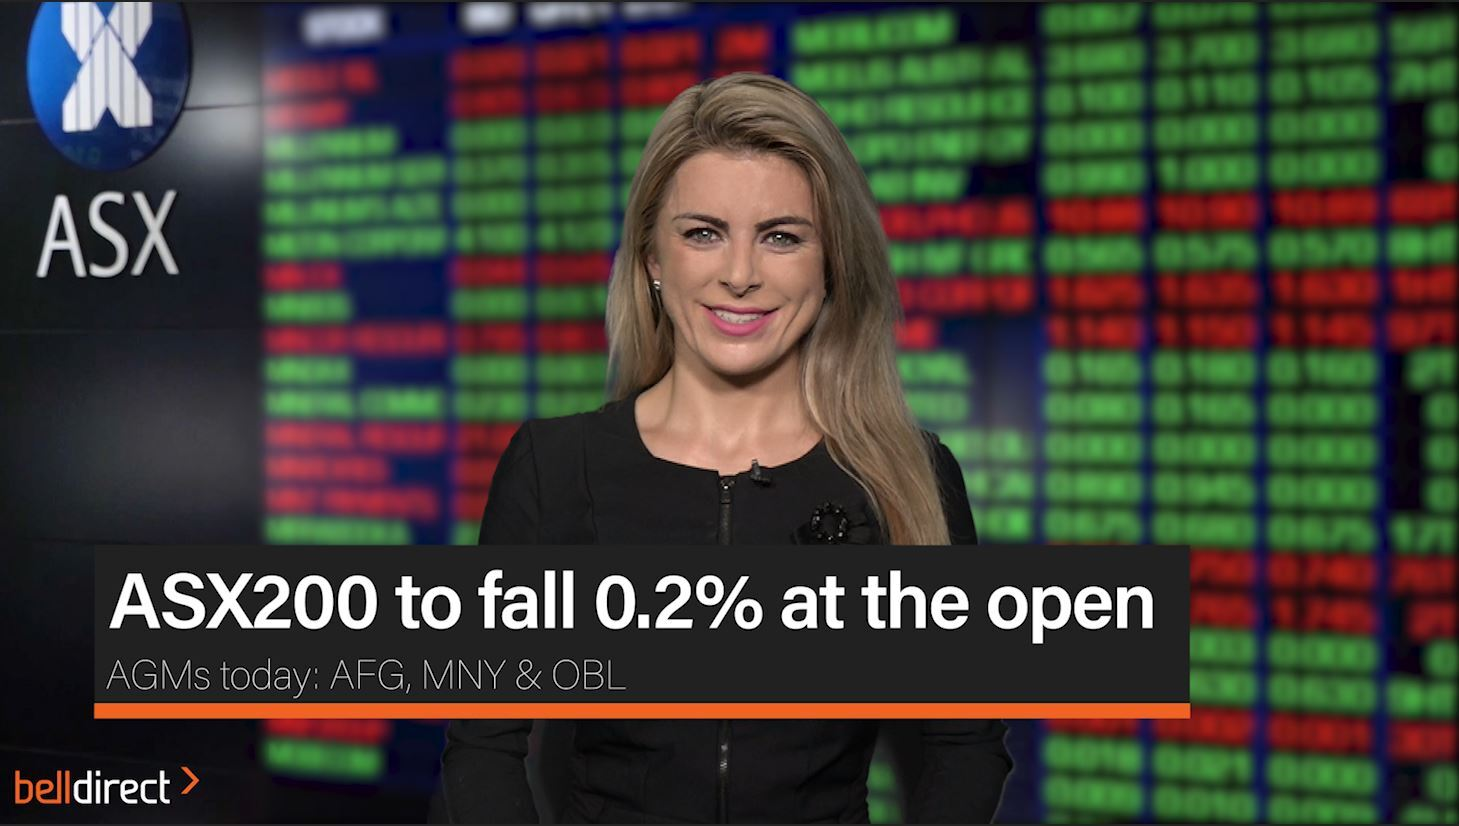 ASX200 to fall 0.2% at the open